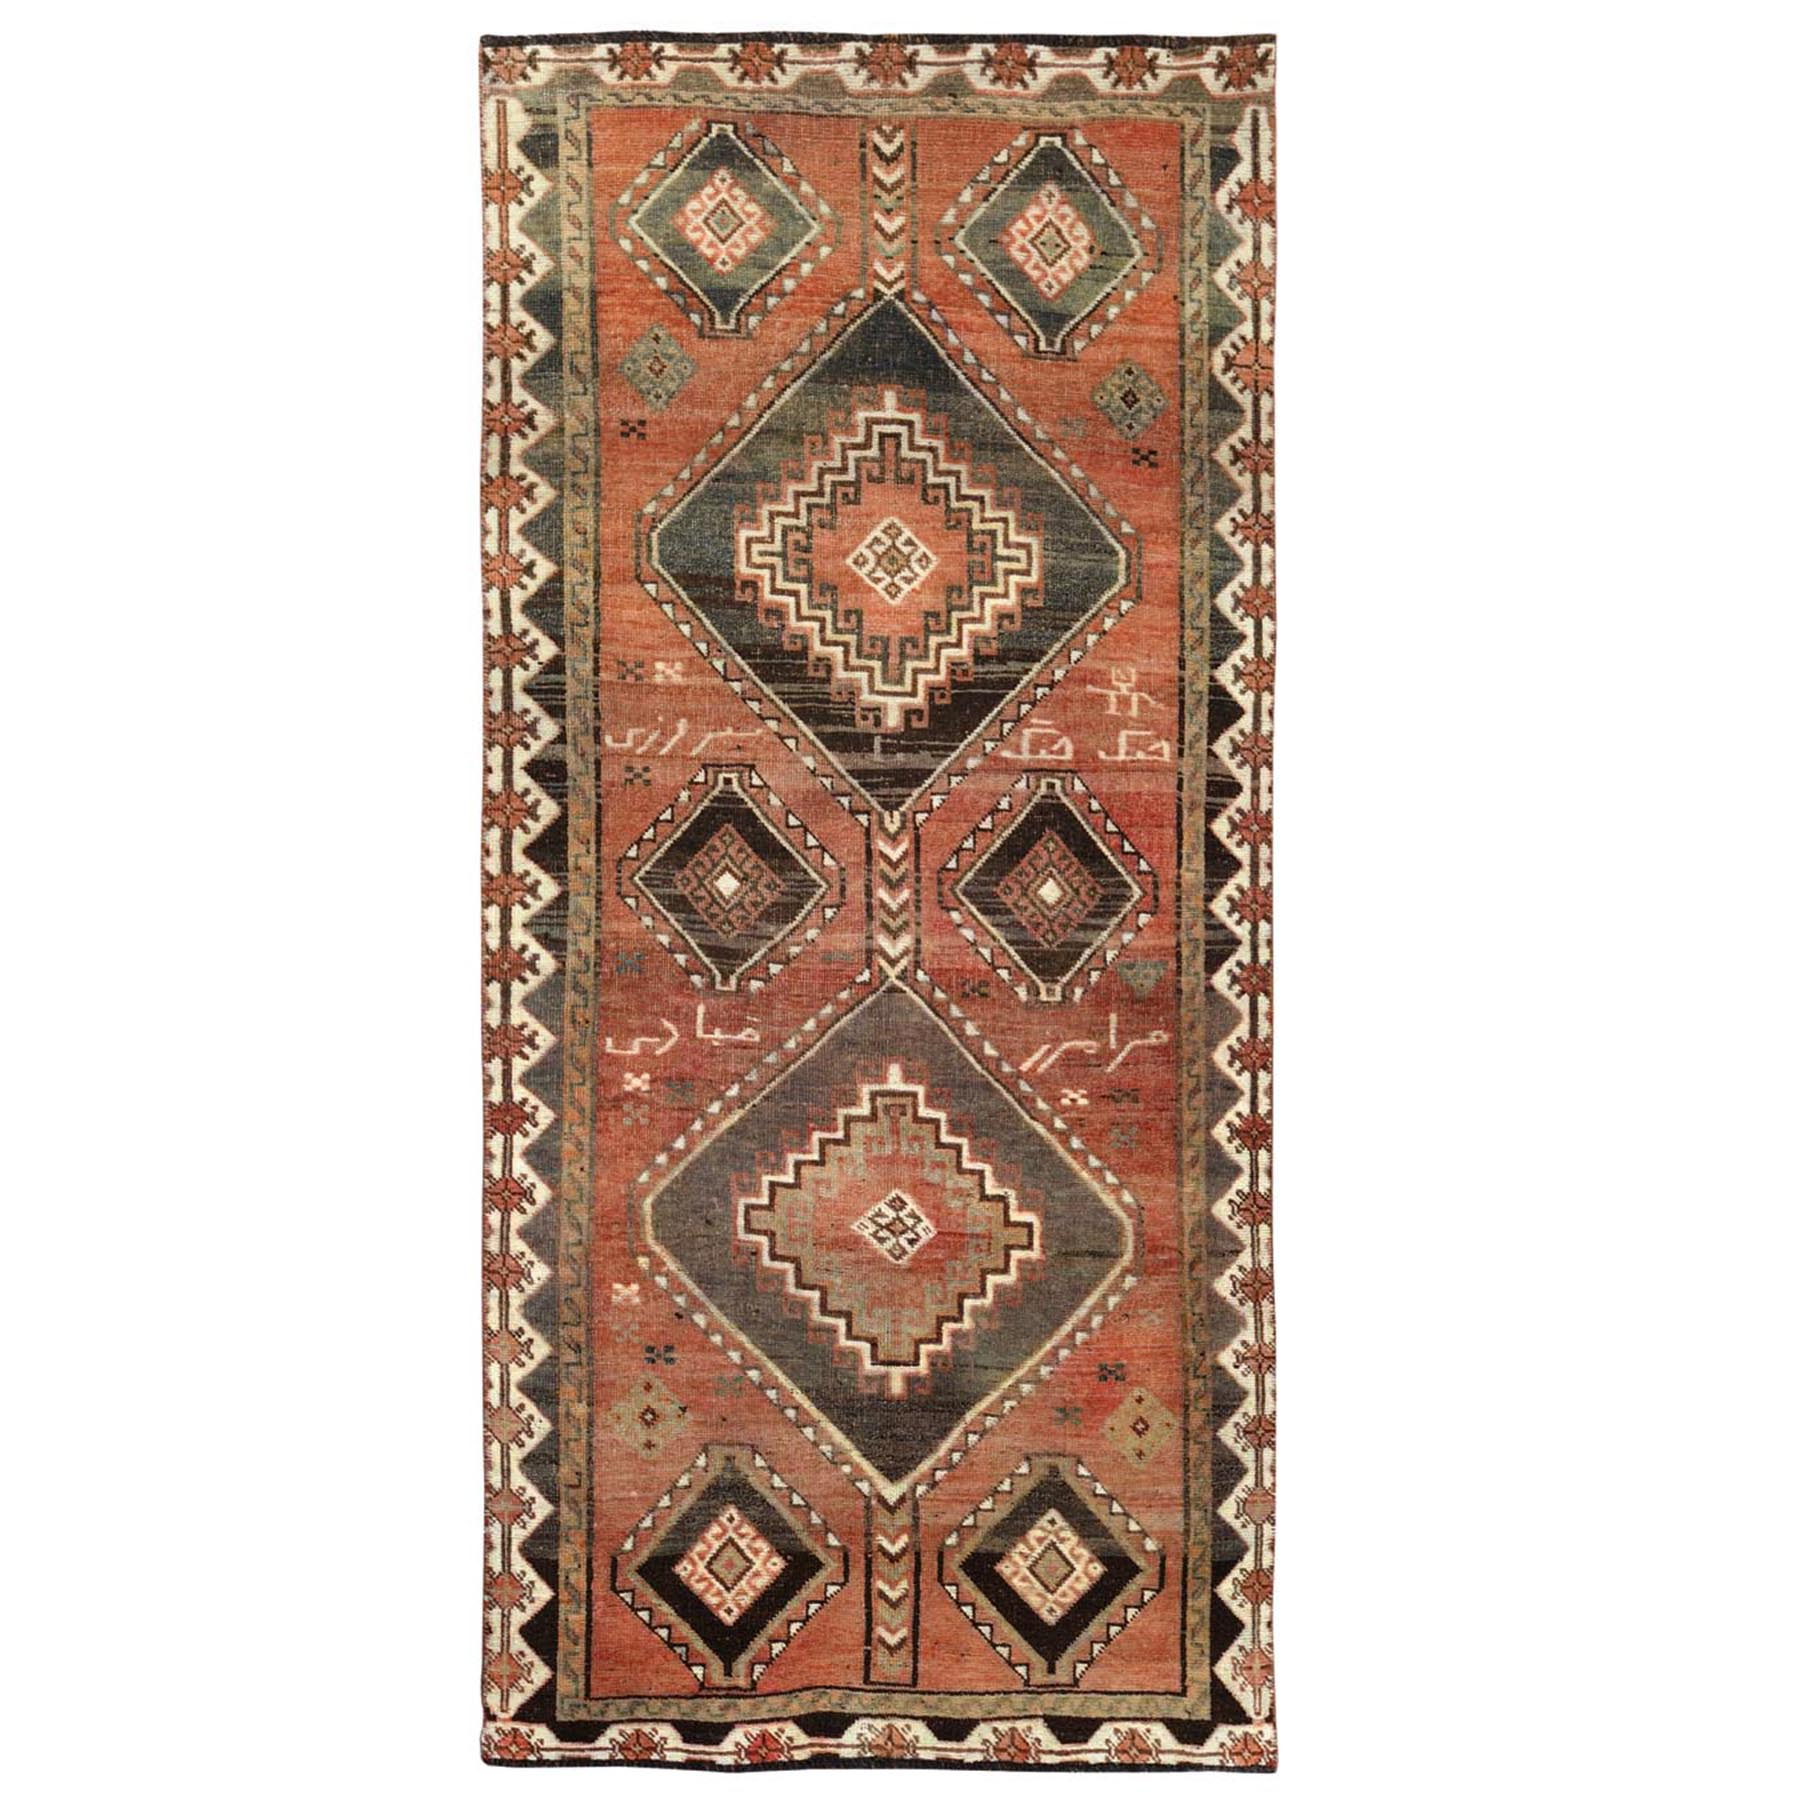 "4'1""x9'4"" Vintage and Worn Down Persian Shiraz Large Elements Wide Runner Hand Woven Oriental Rug"